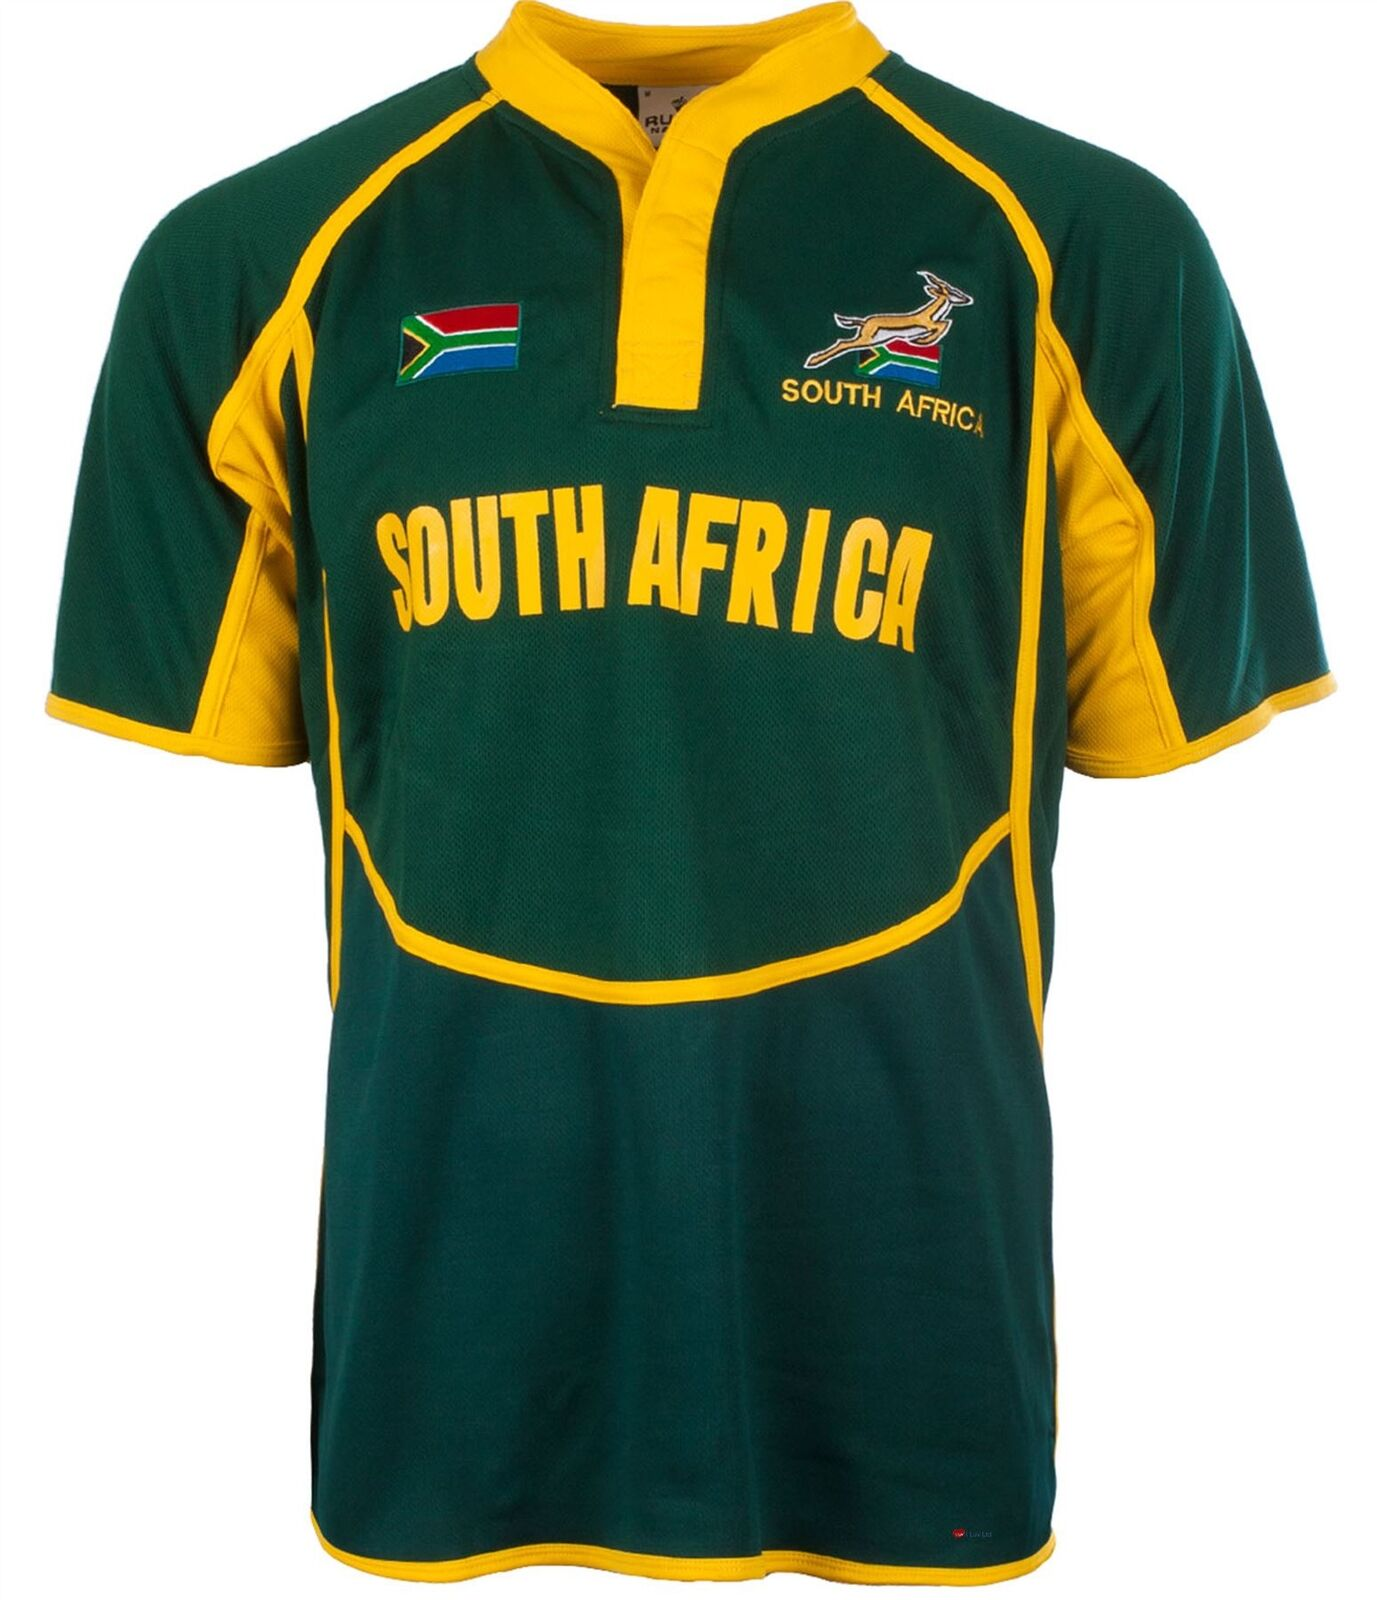 Gents Cooldry Style Rugby Shirt In South Africa Colours Größe 3X-Large